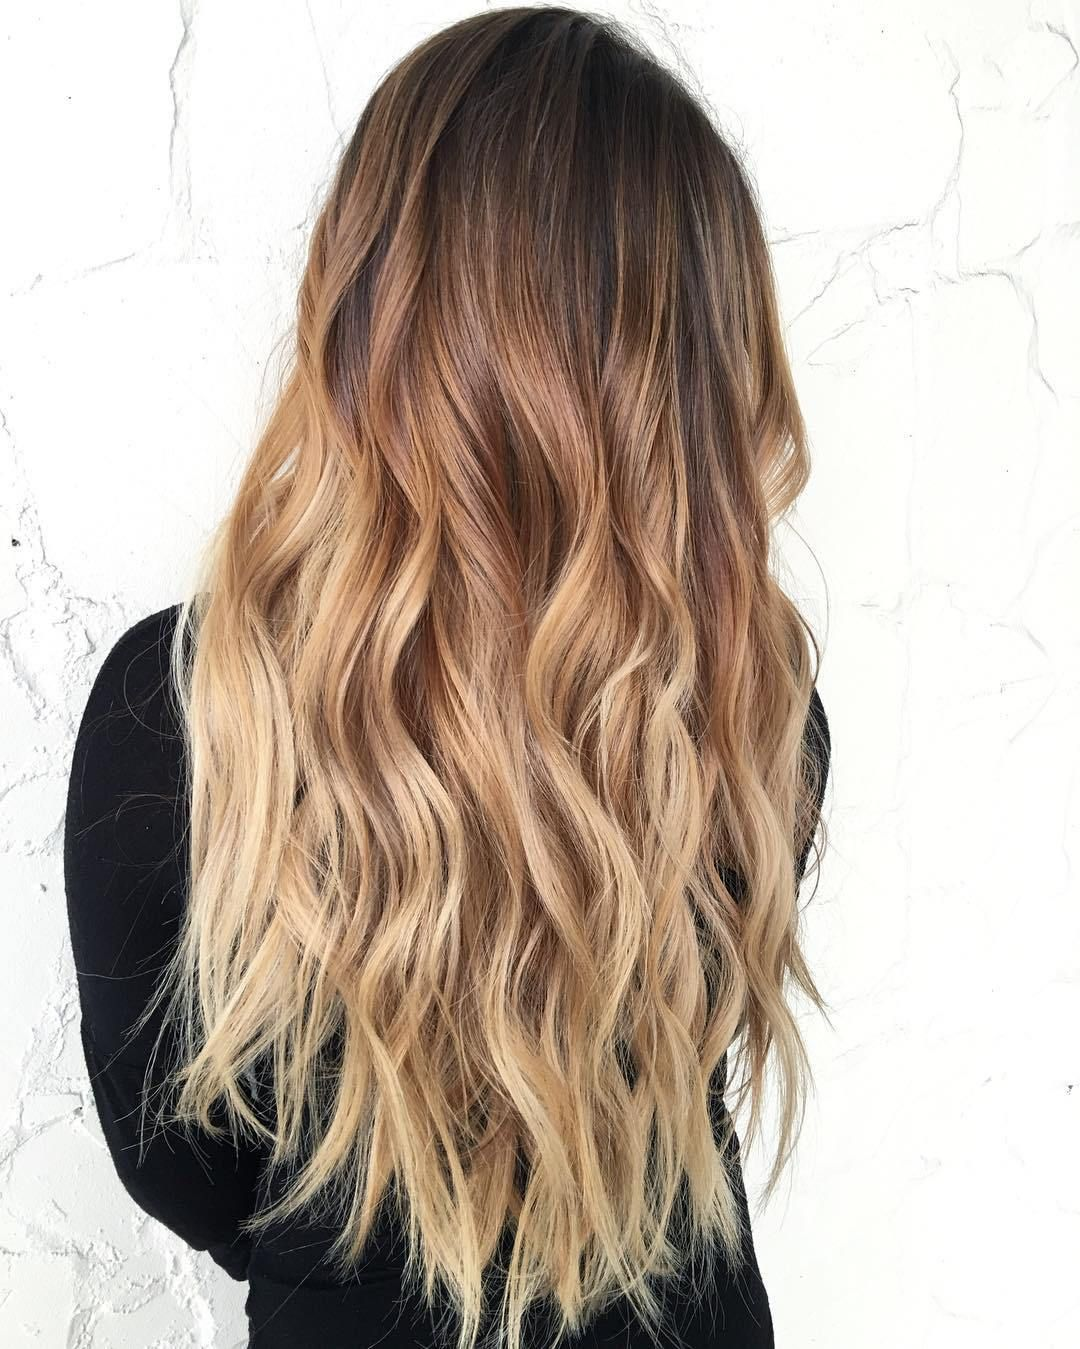 60 best ombre hair color ideas for blond brown red and black hair blonde ombre ombre and. Black Bedroom Furniture Sets. Home Design Ideas